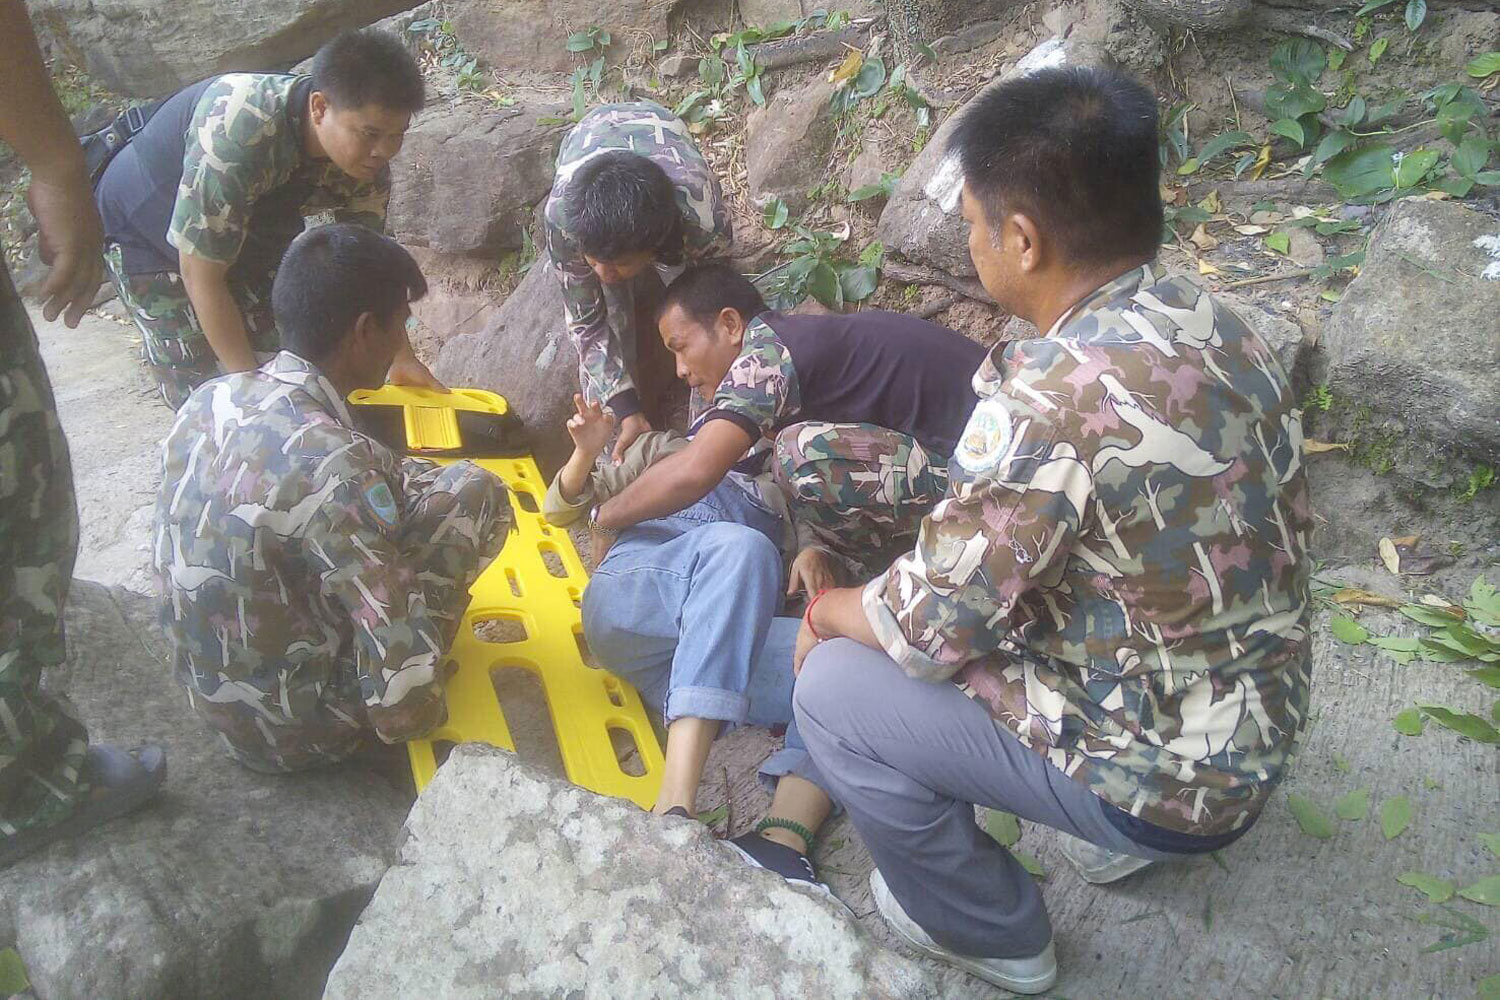 Park rangers help a pregnant Chinese woman who fell from a cliff at the Pha Taem National Park in Khong Chiam district of Ubon Ratchathani province on Sunday morning. (Photo from the Pha Taem National Park)